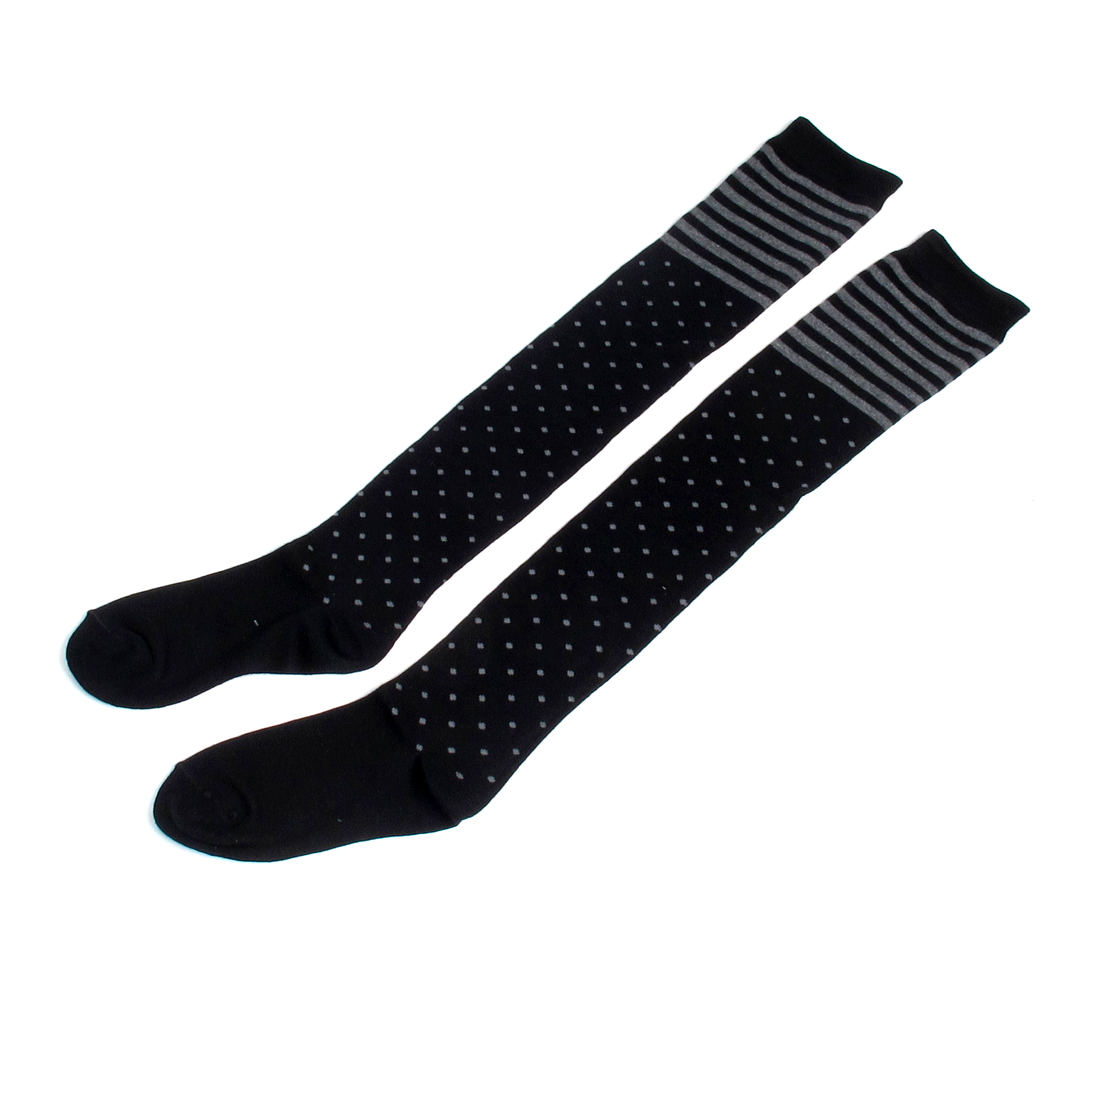 Lady Stripes Elastic Acrylic Leg Warmers Long Stockings Black Gray Pair